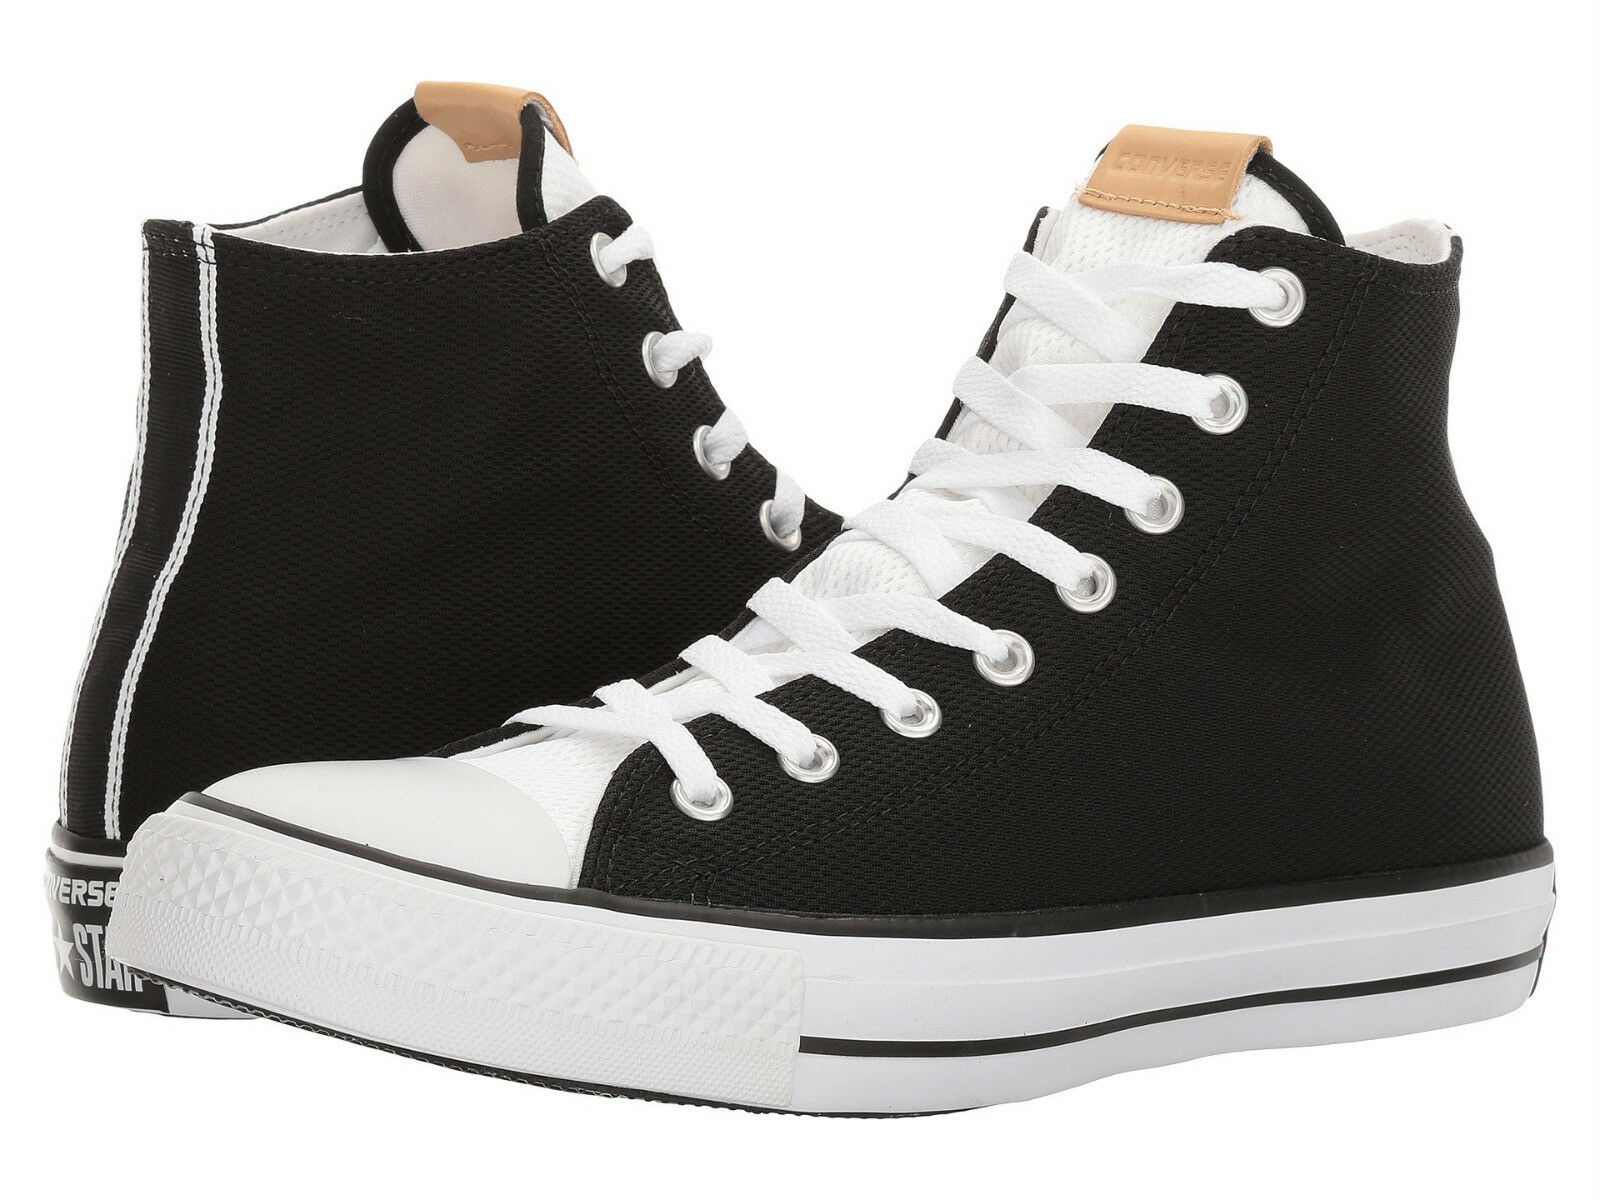 Converse Chuck Taylor All Star Colorblock Black/White Textile High Tops Men 11